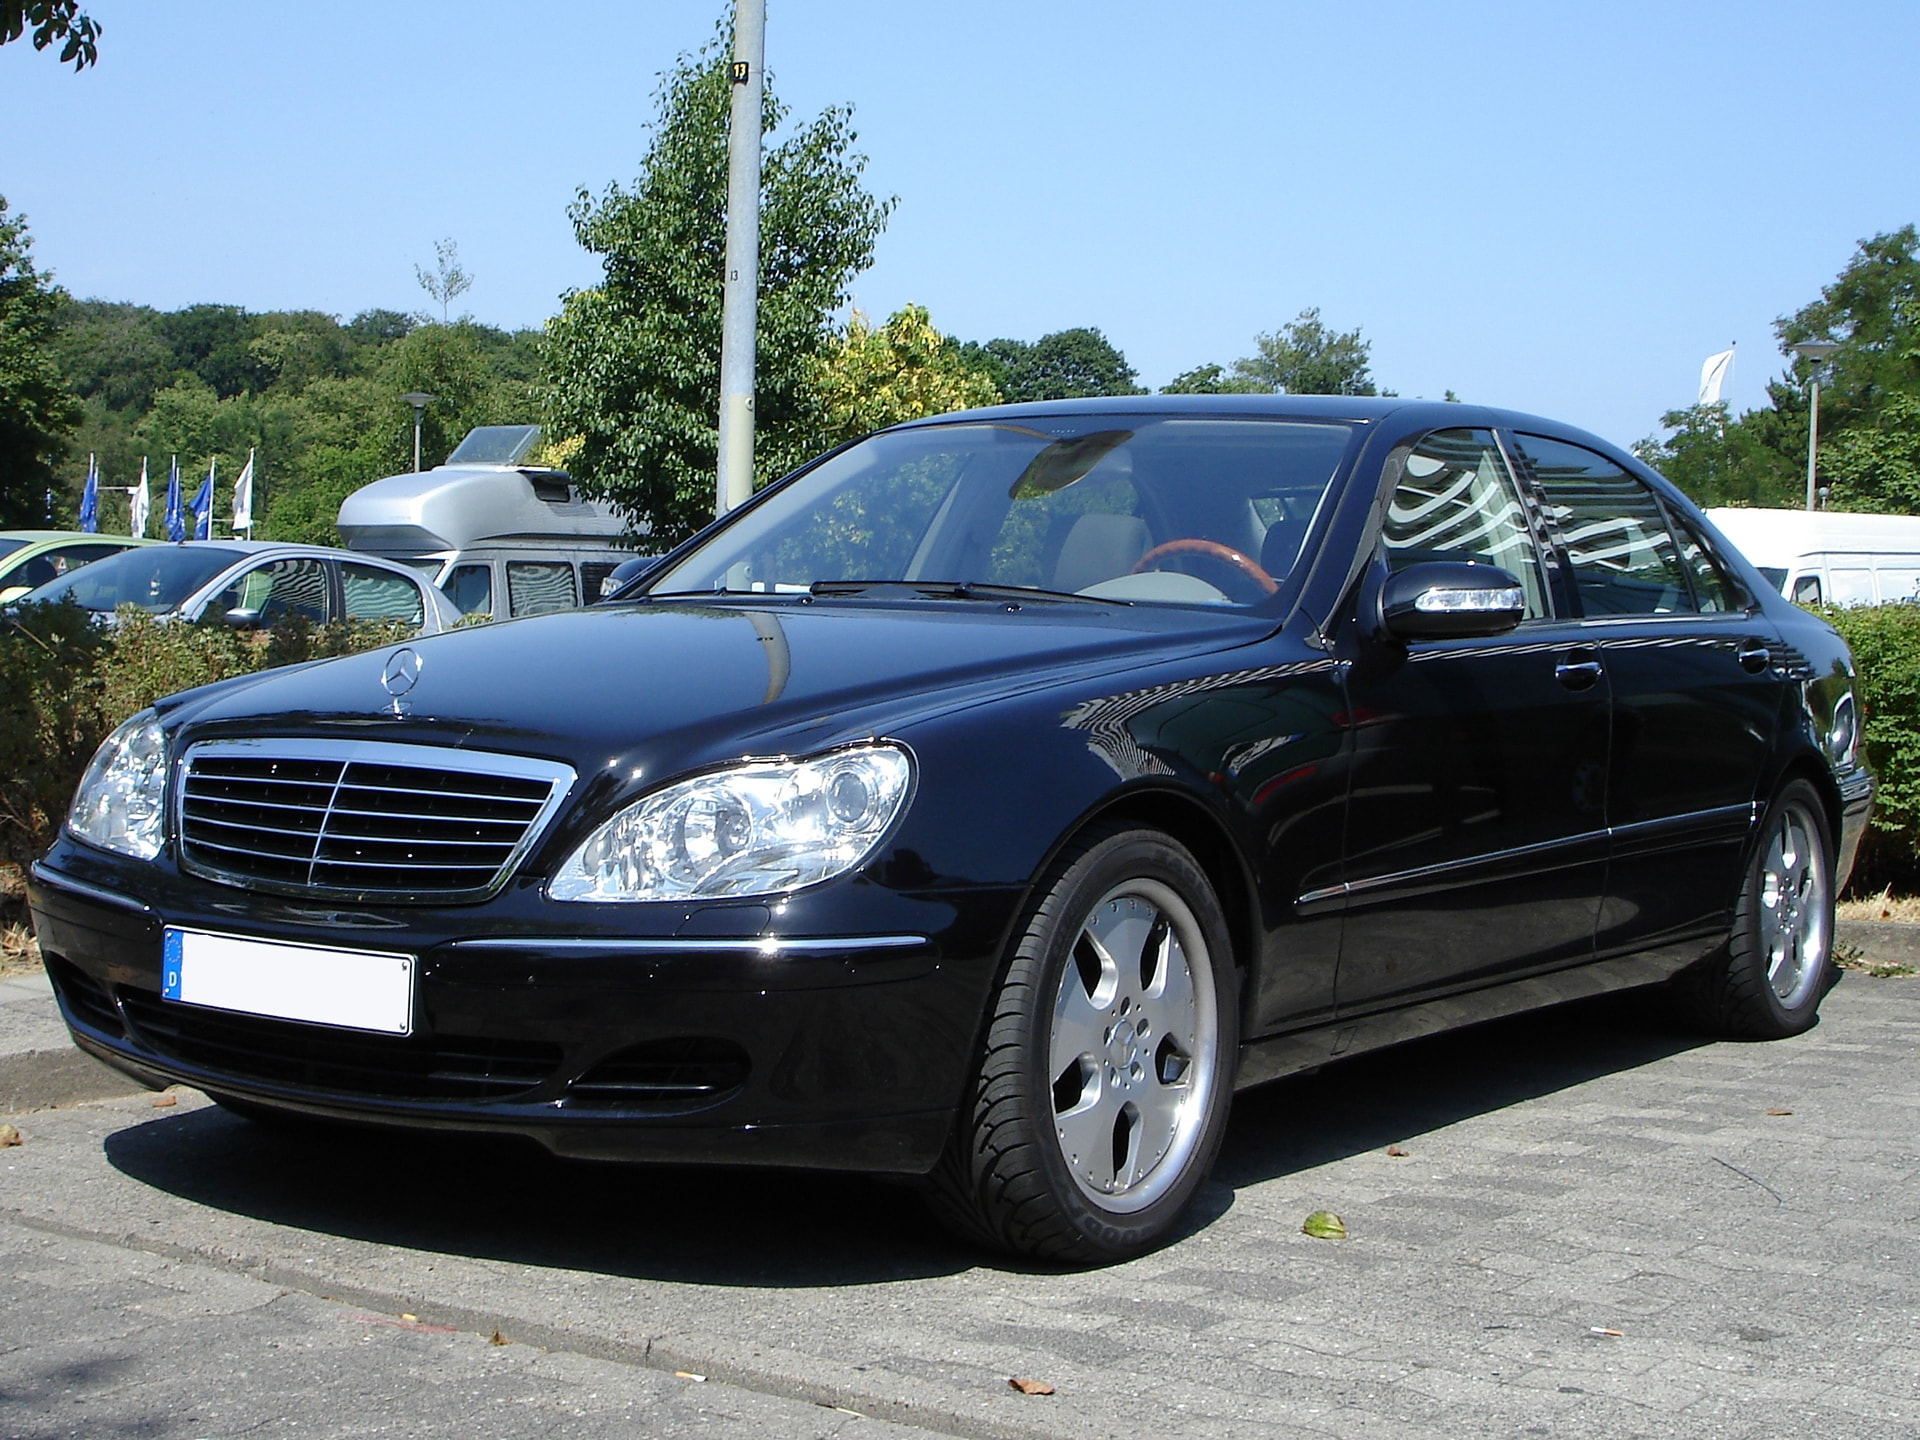 Mercedes benz s class w220 lease toplimo kz for Mercedes benz lease terms